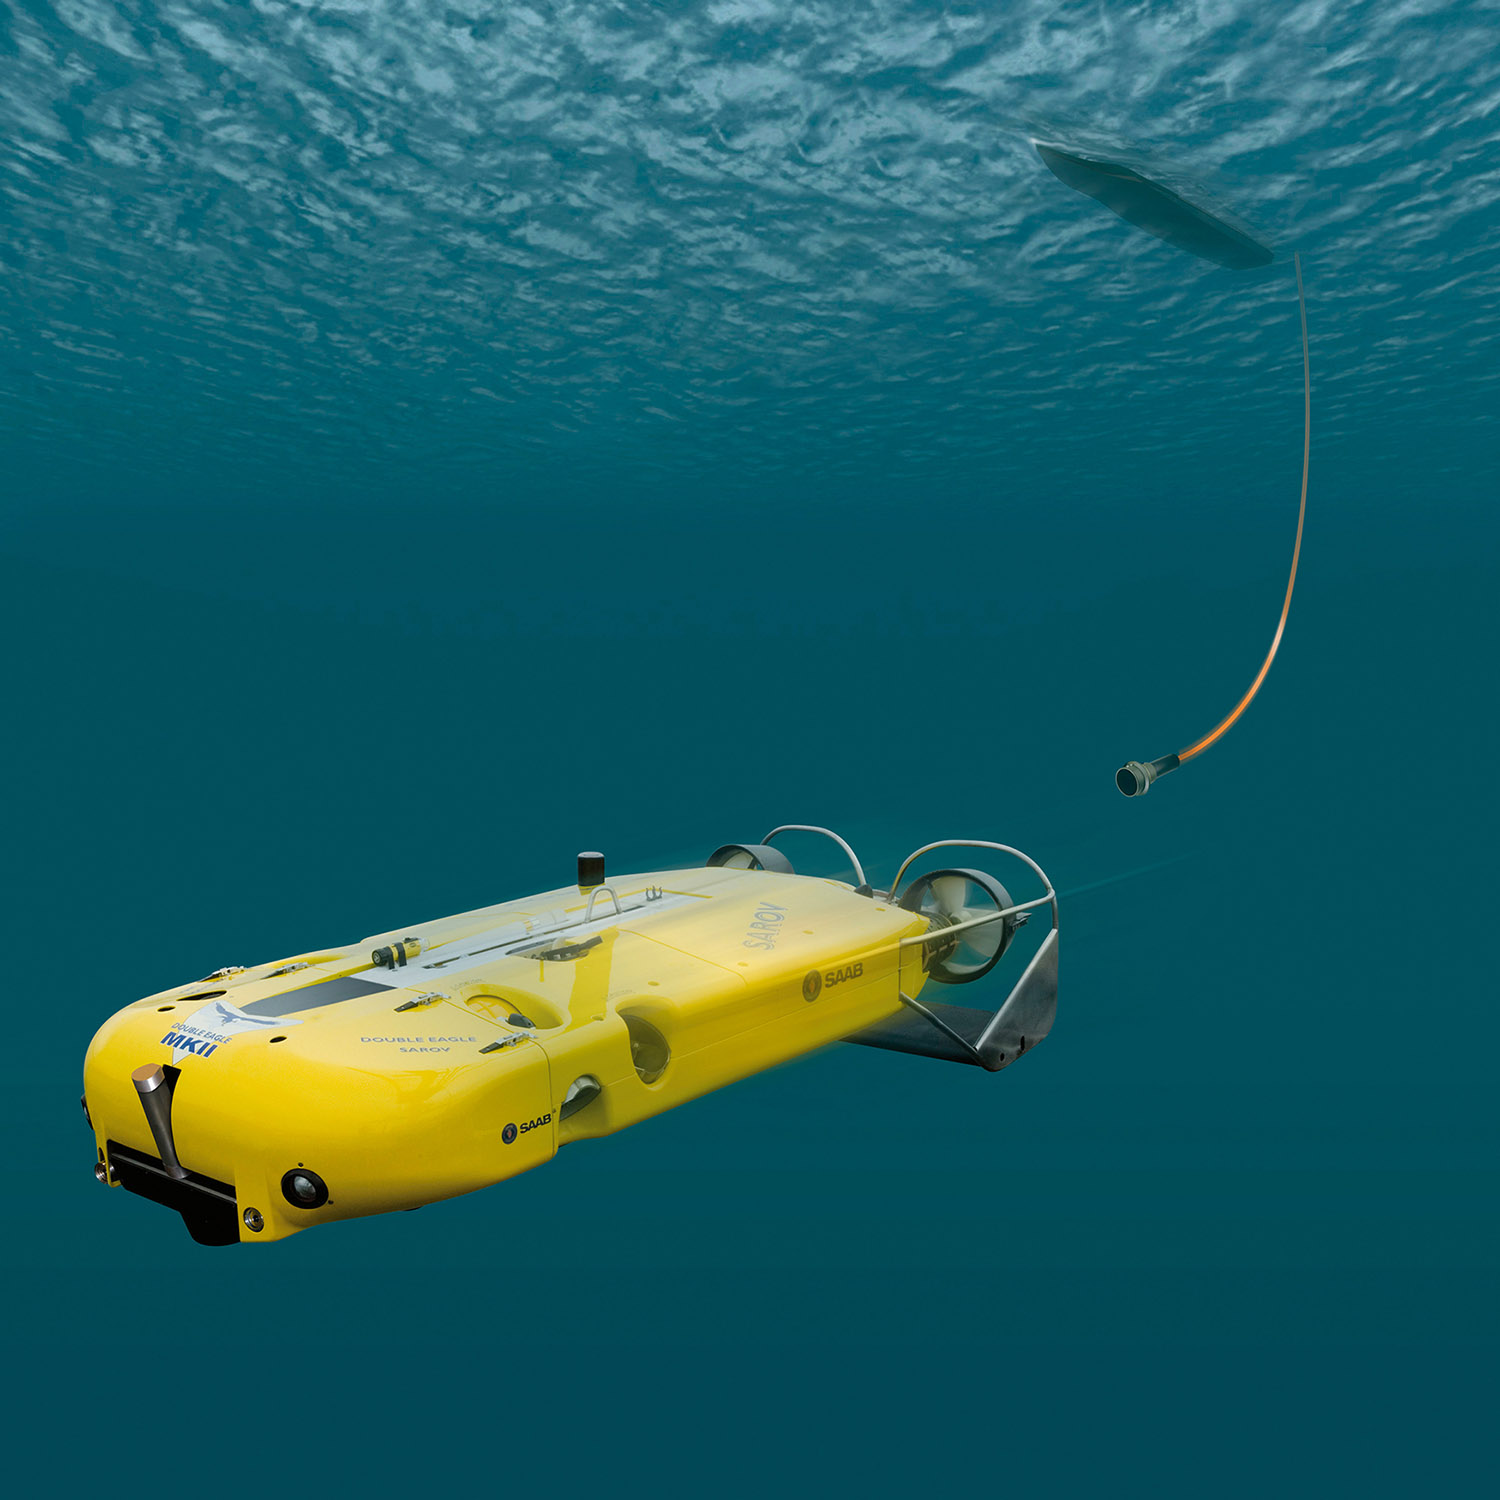 reap-underwater-vehicles-battery-management-systems-3.jpg